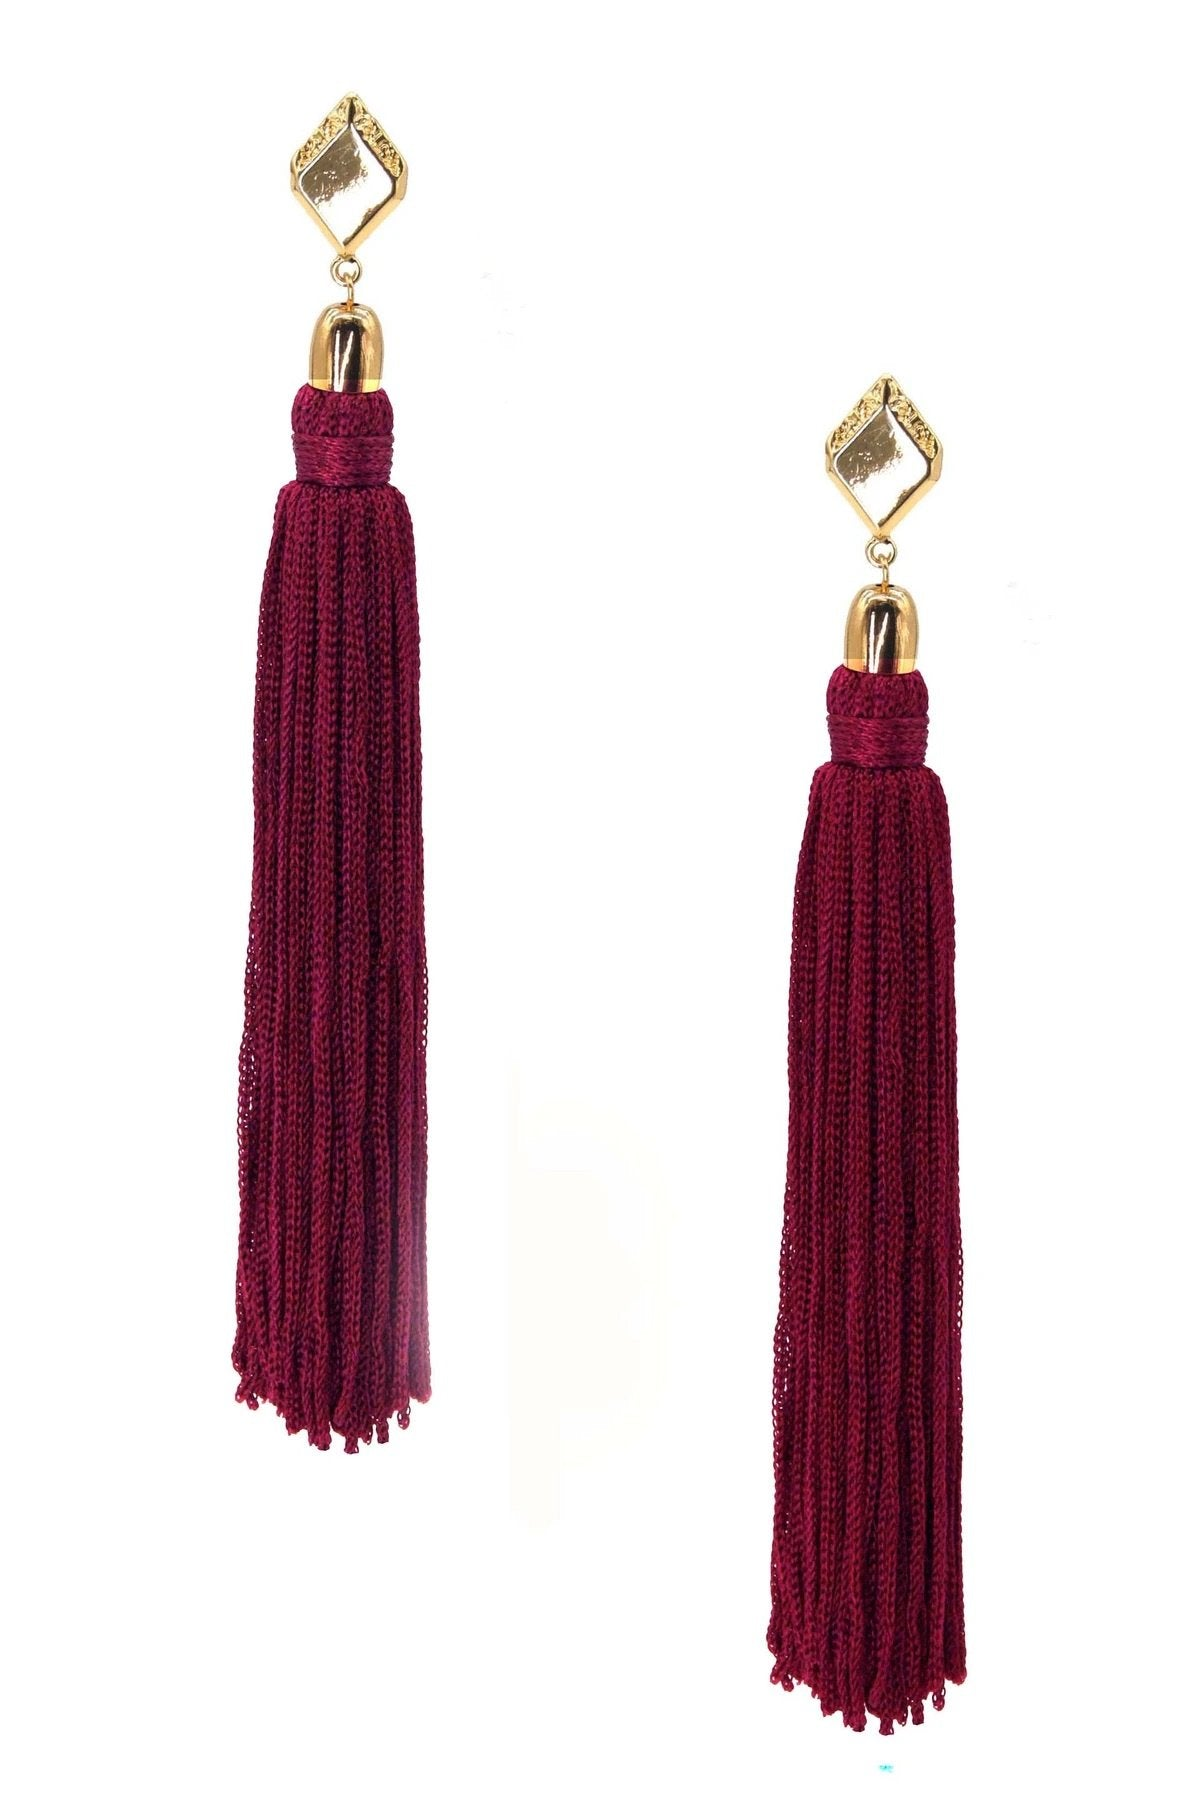 Load image into Gallery viewer, Mon Cheri Tassel Earrings in Burgundy and Gold